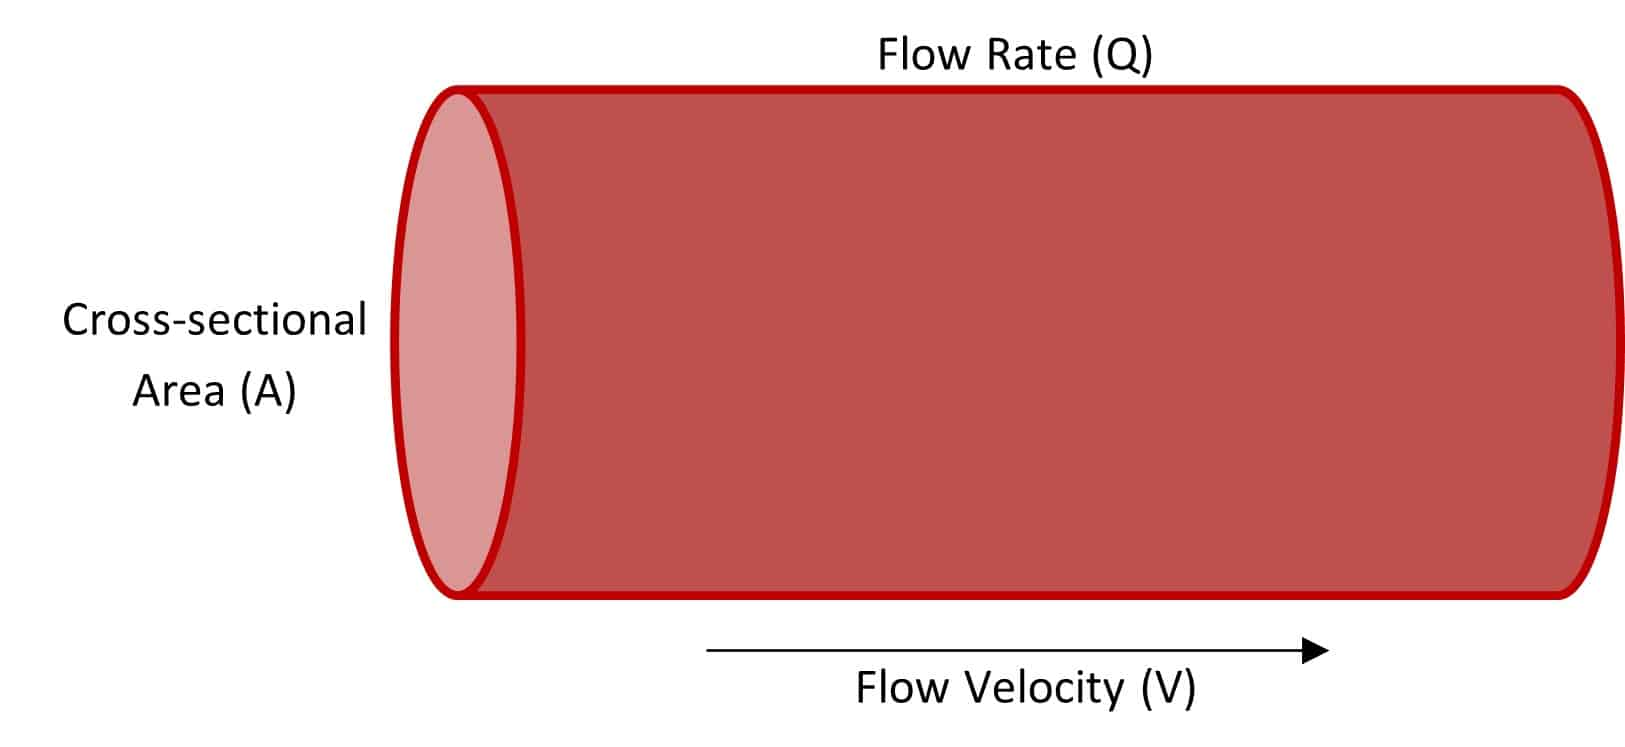 flow rate and flow velocity diagram